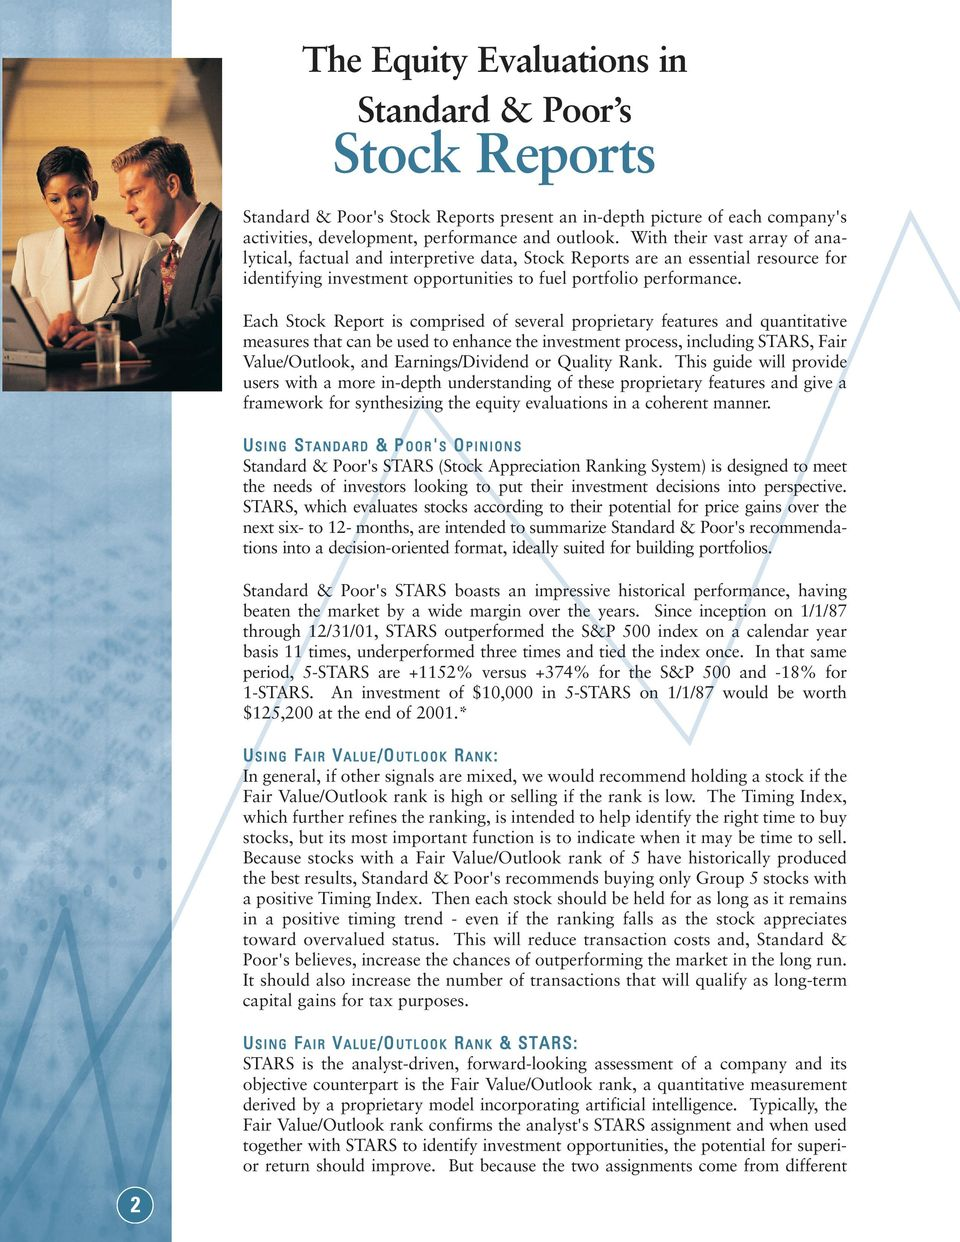 Each Stock Report is comprised of several proprietary features and quantitative measures that can be used to enhance the investment process, including STARS, Fair Value/Outlook, and Earnings/Dividend